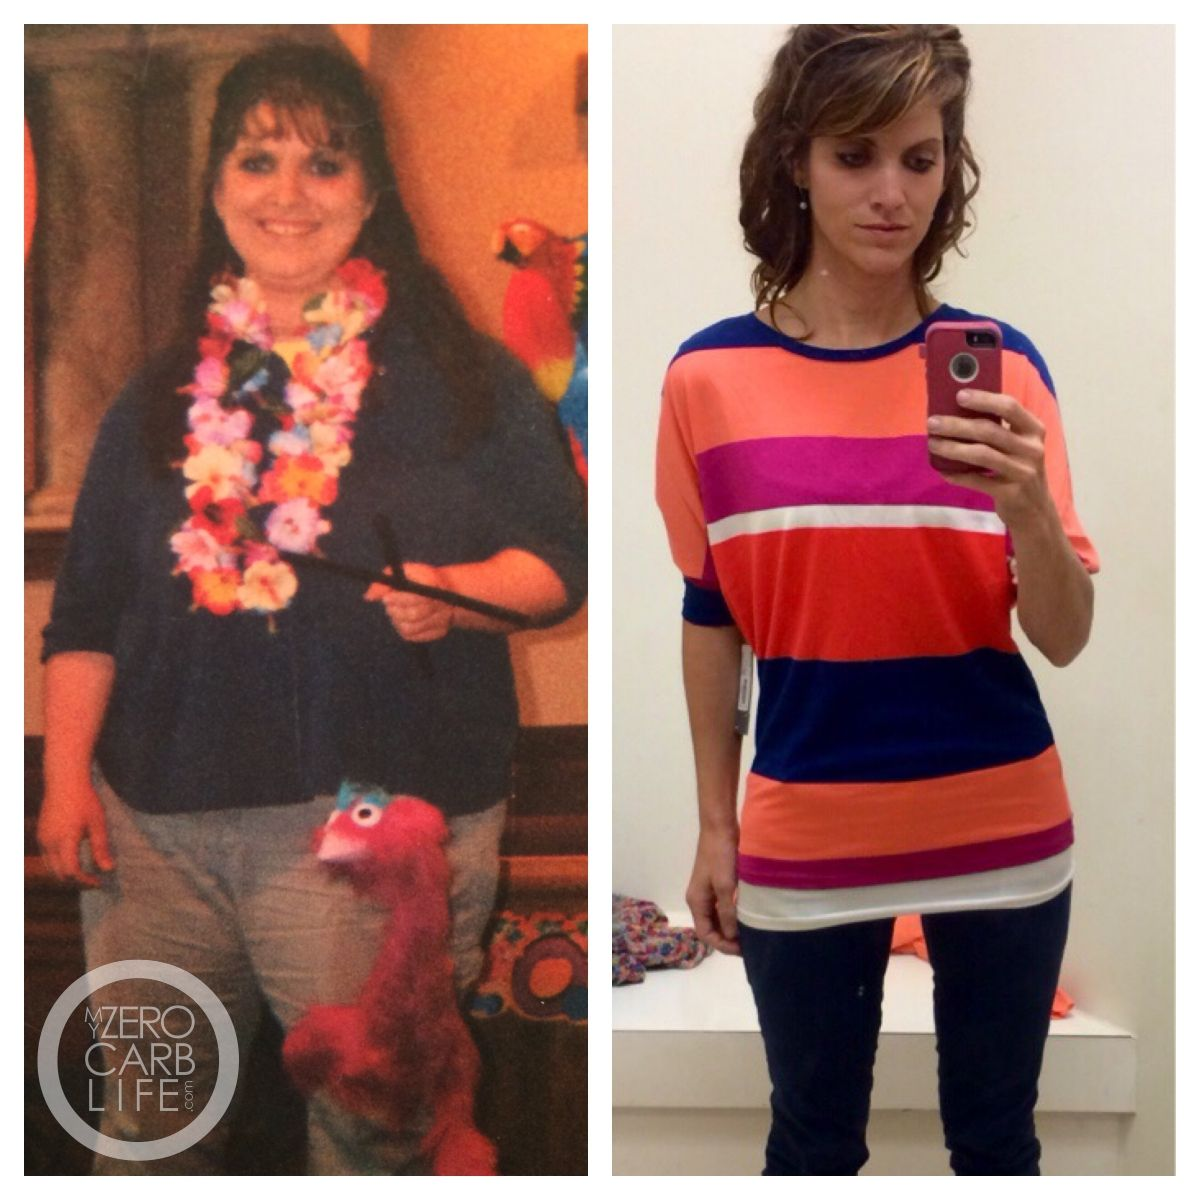 The gutsy decision to go zero carb delivered a stunning ...